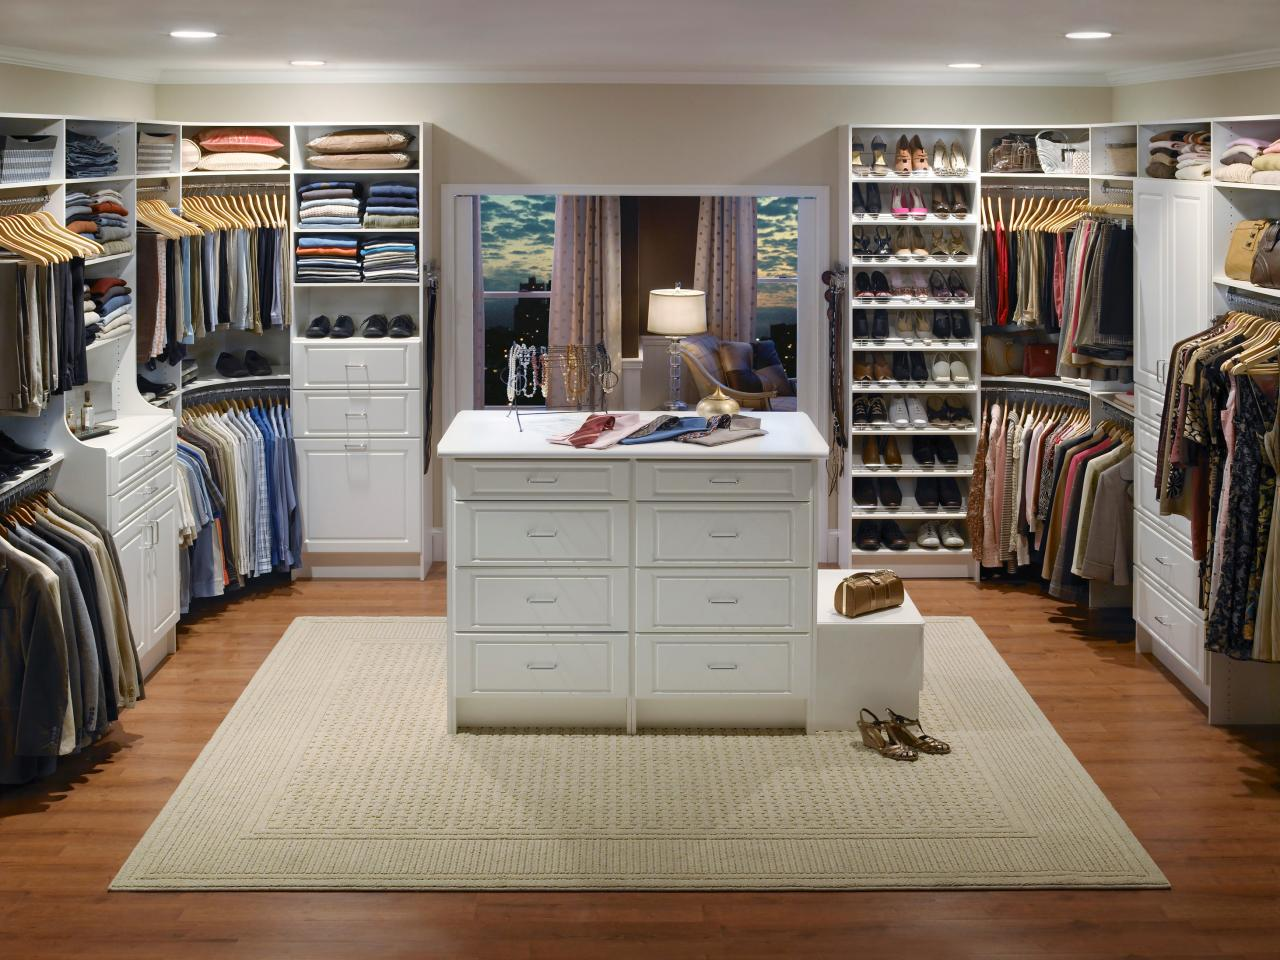 Install Bright Lighting For Wide Walk In Closet With Stunning Closet Design  Ideas With Using Classic